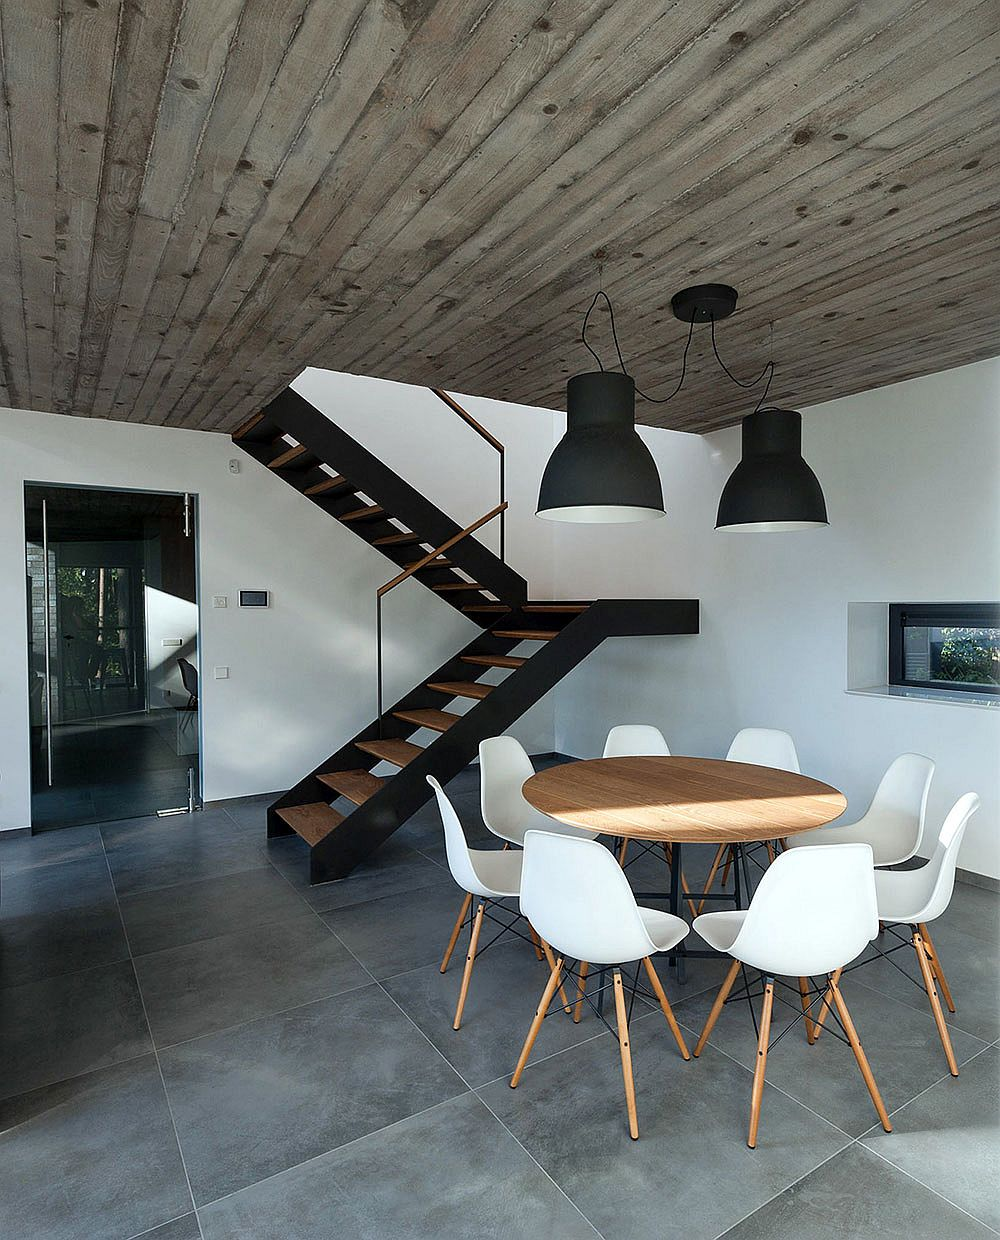 Dark industrial style lighting above the small dining area